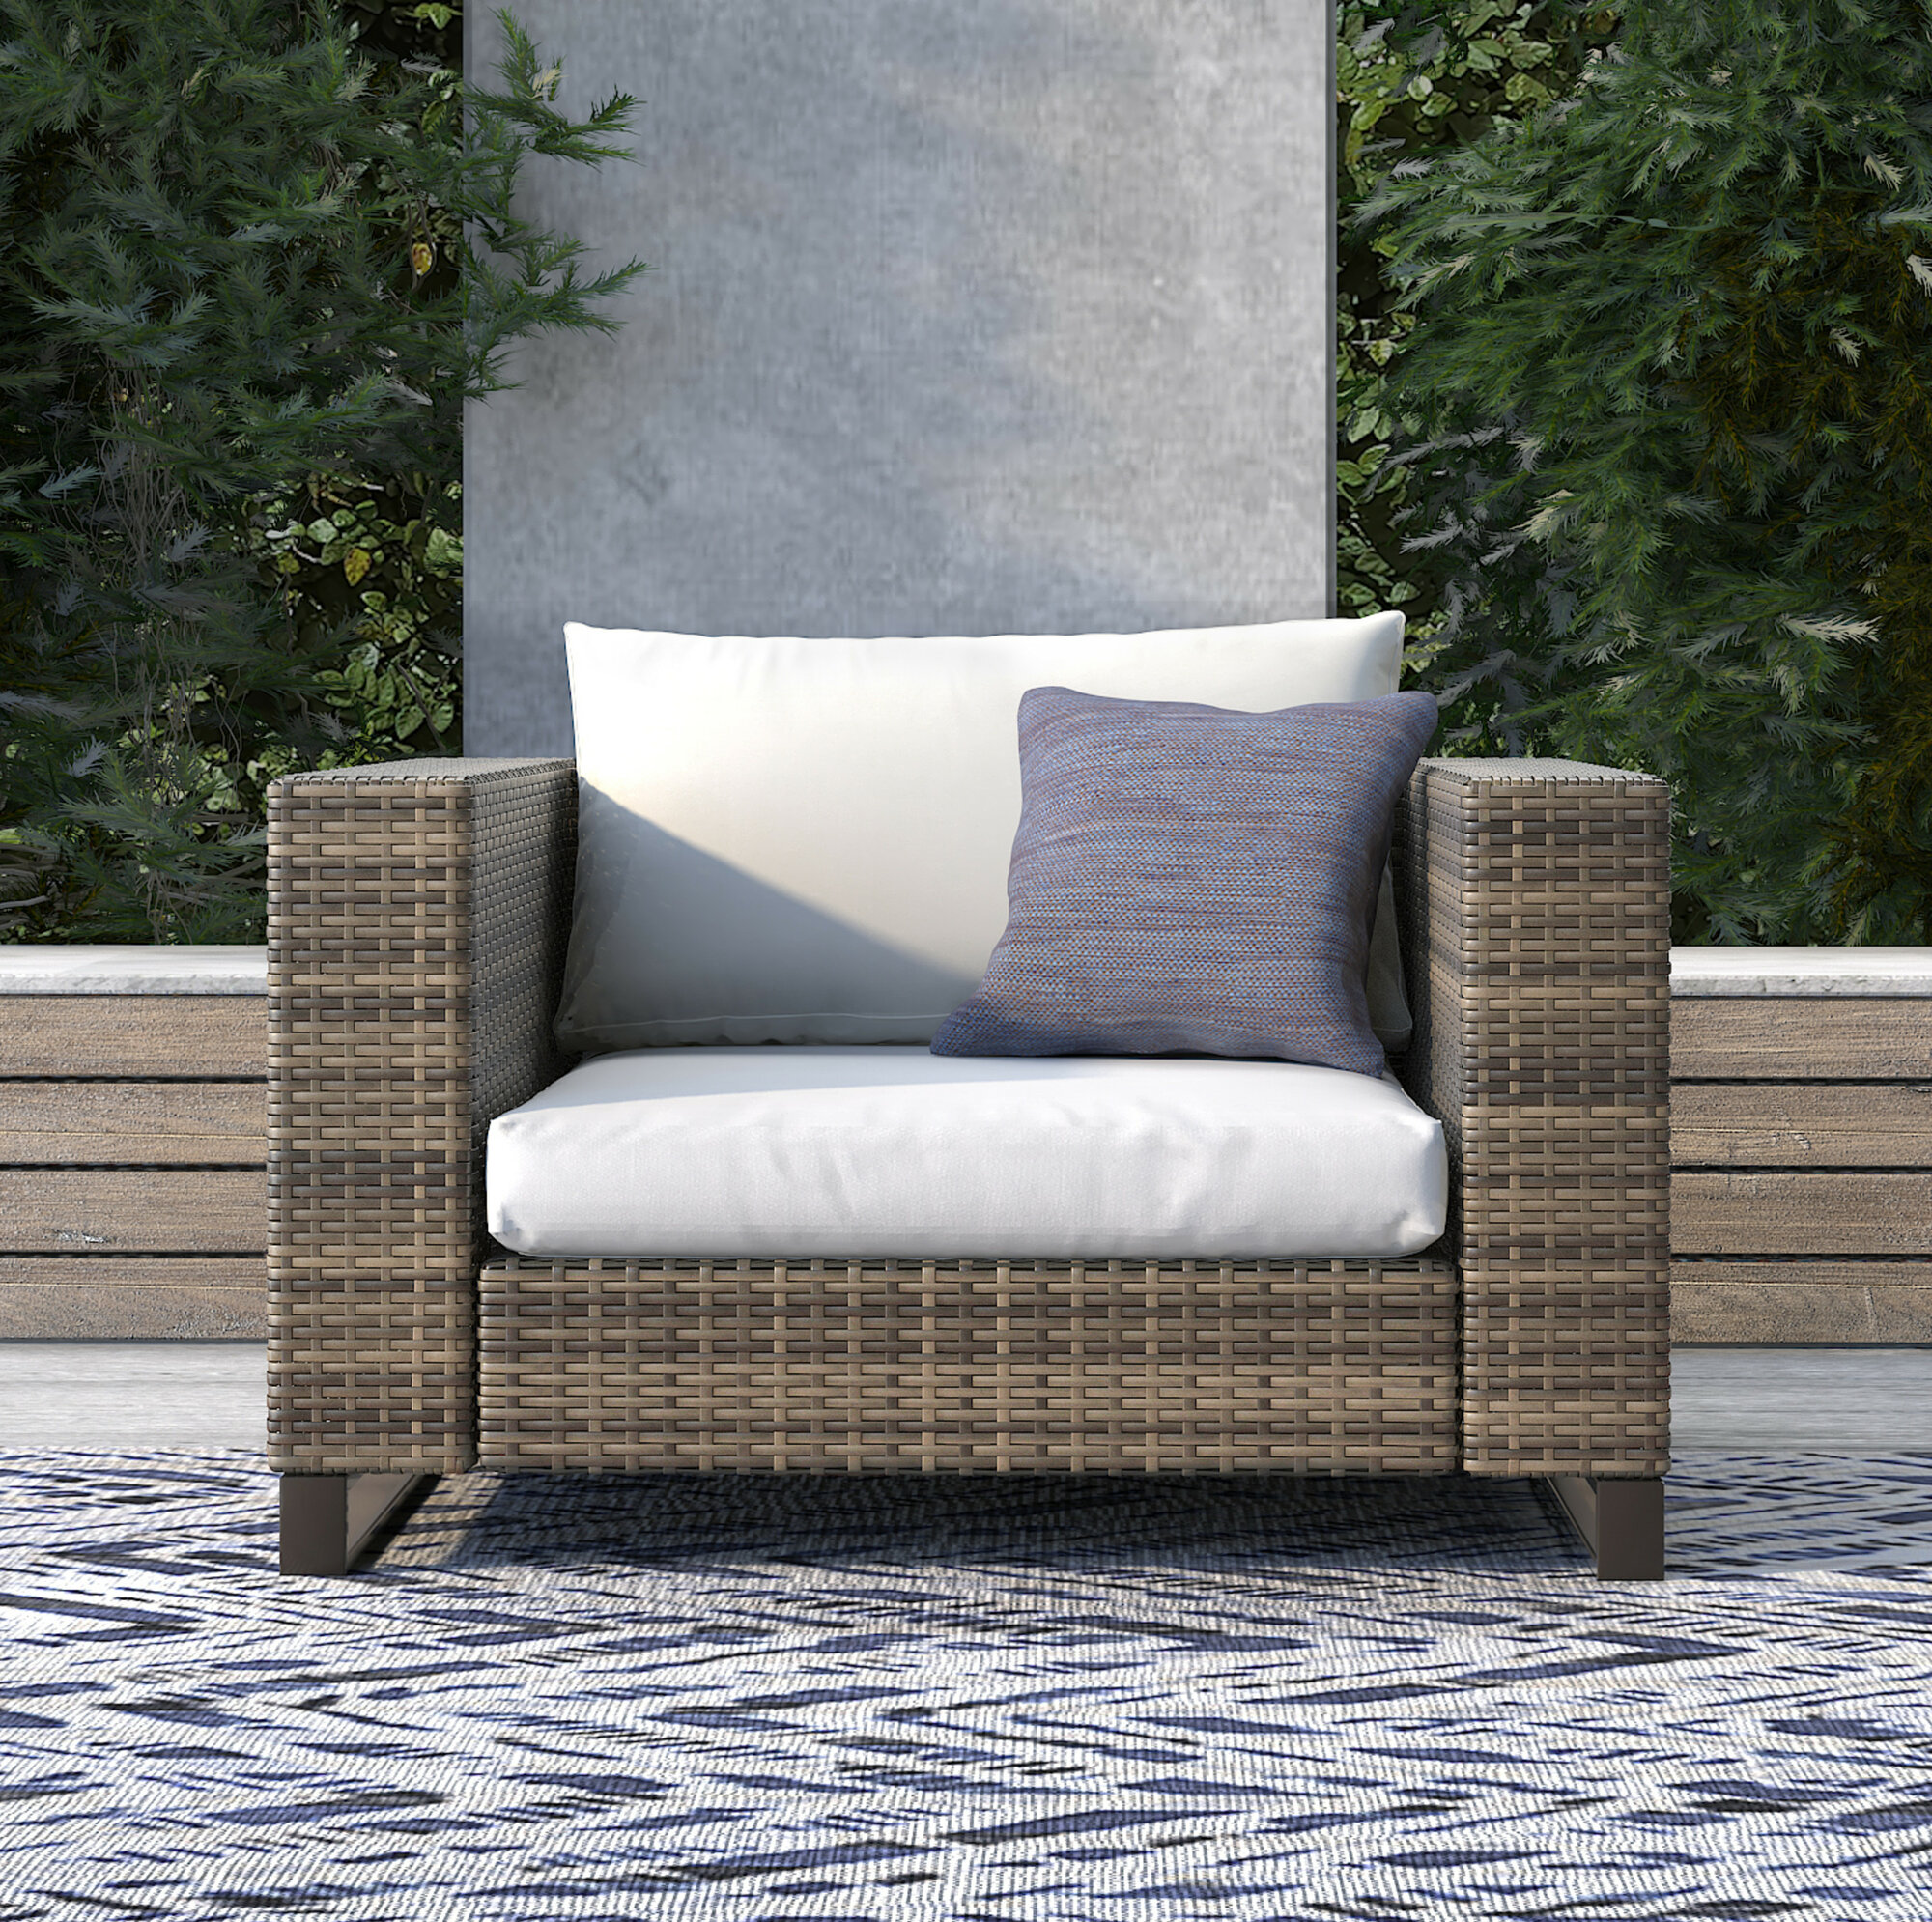 Details About Tommy Hilfiger Oceanside Outdoor Wicker Patio Chair With Cushions